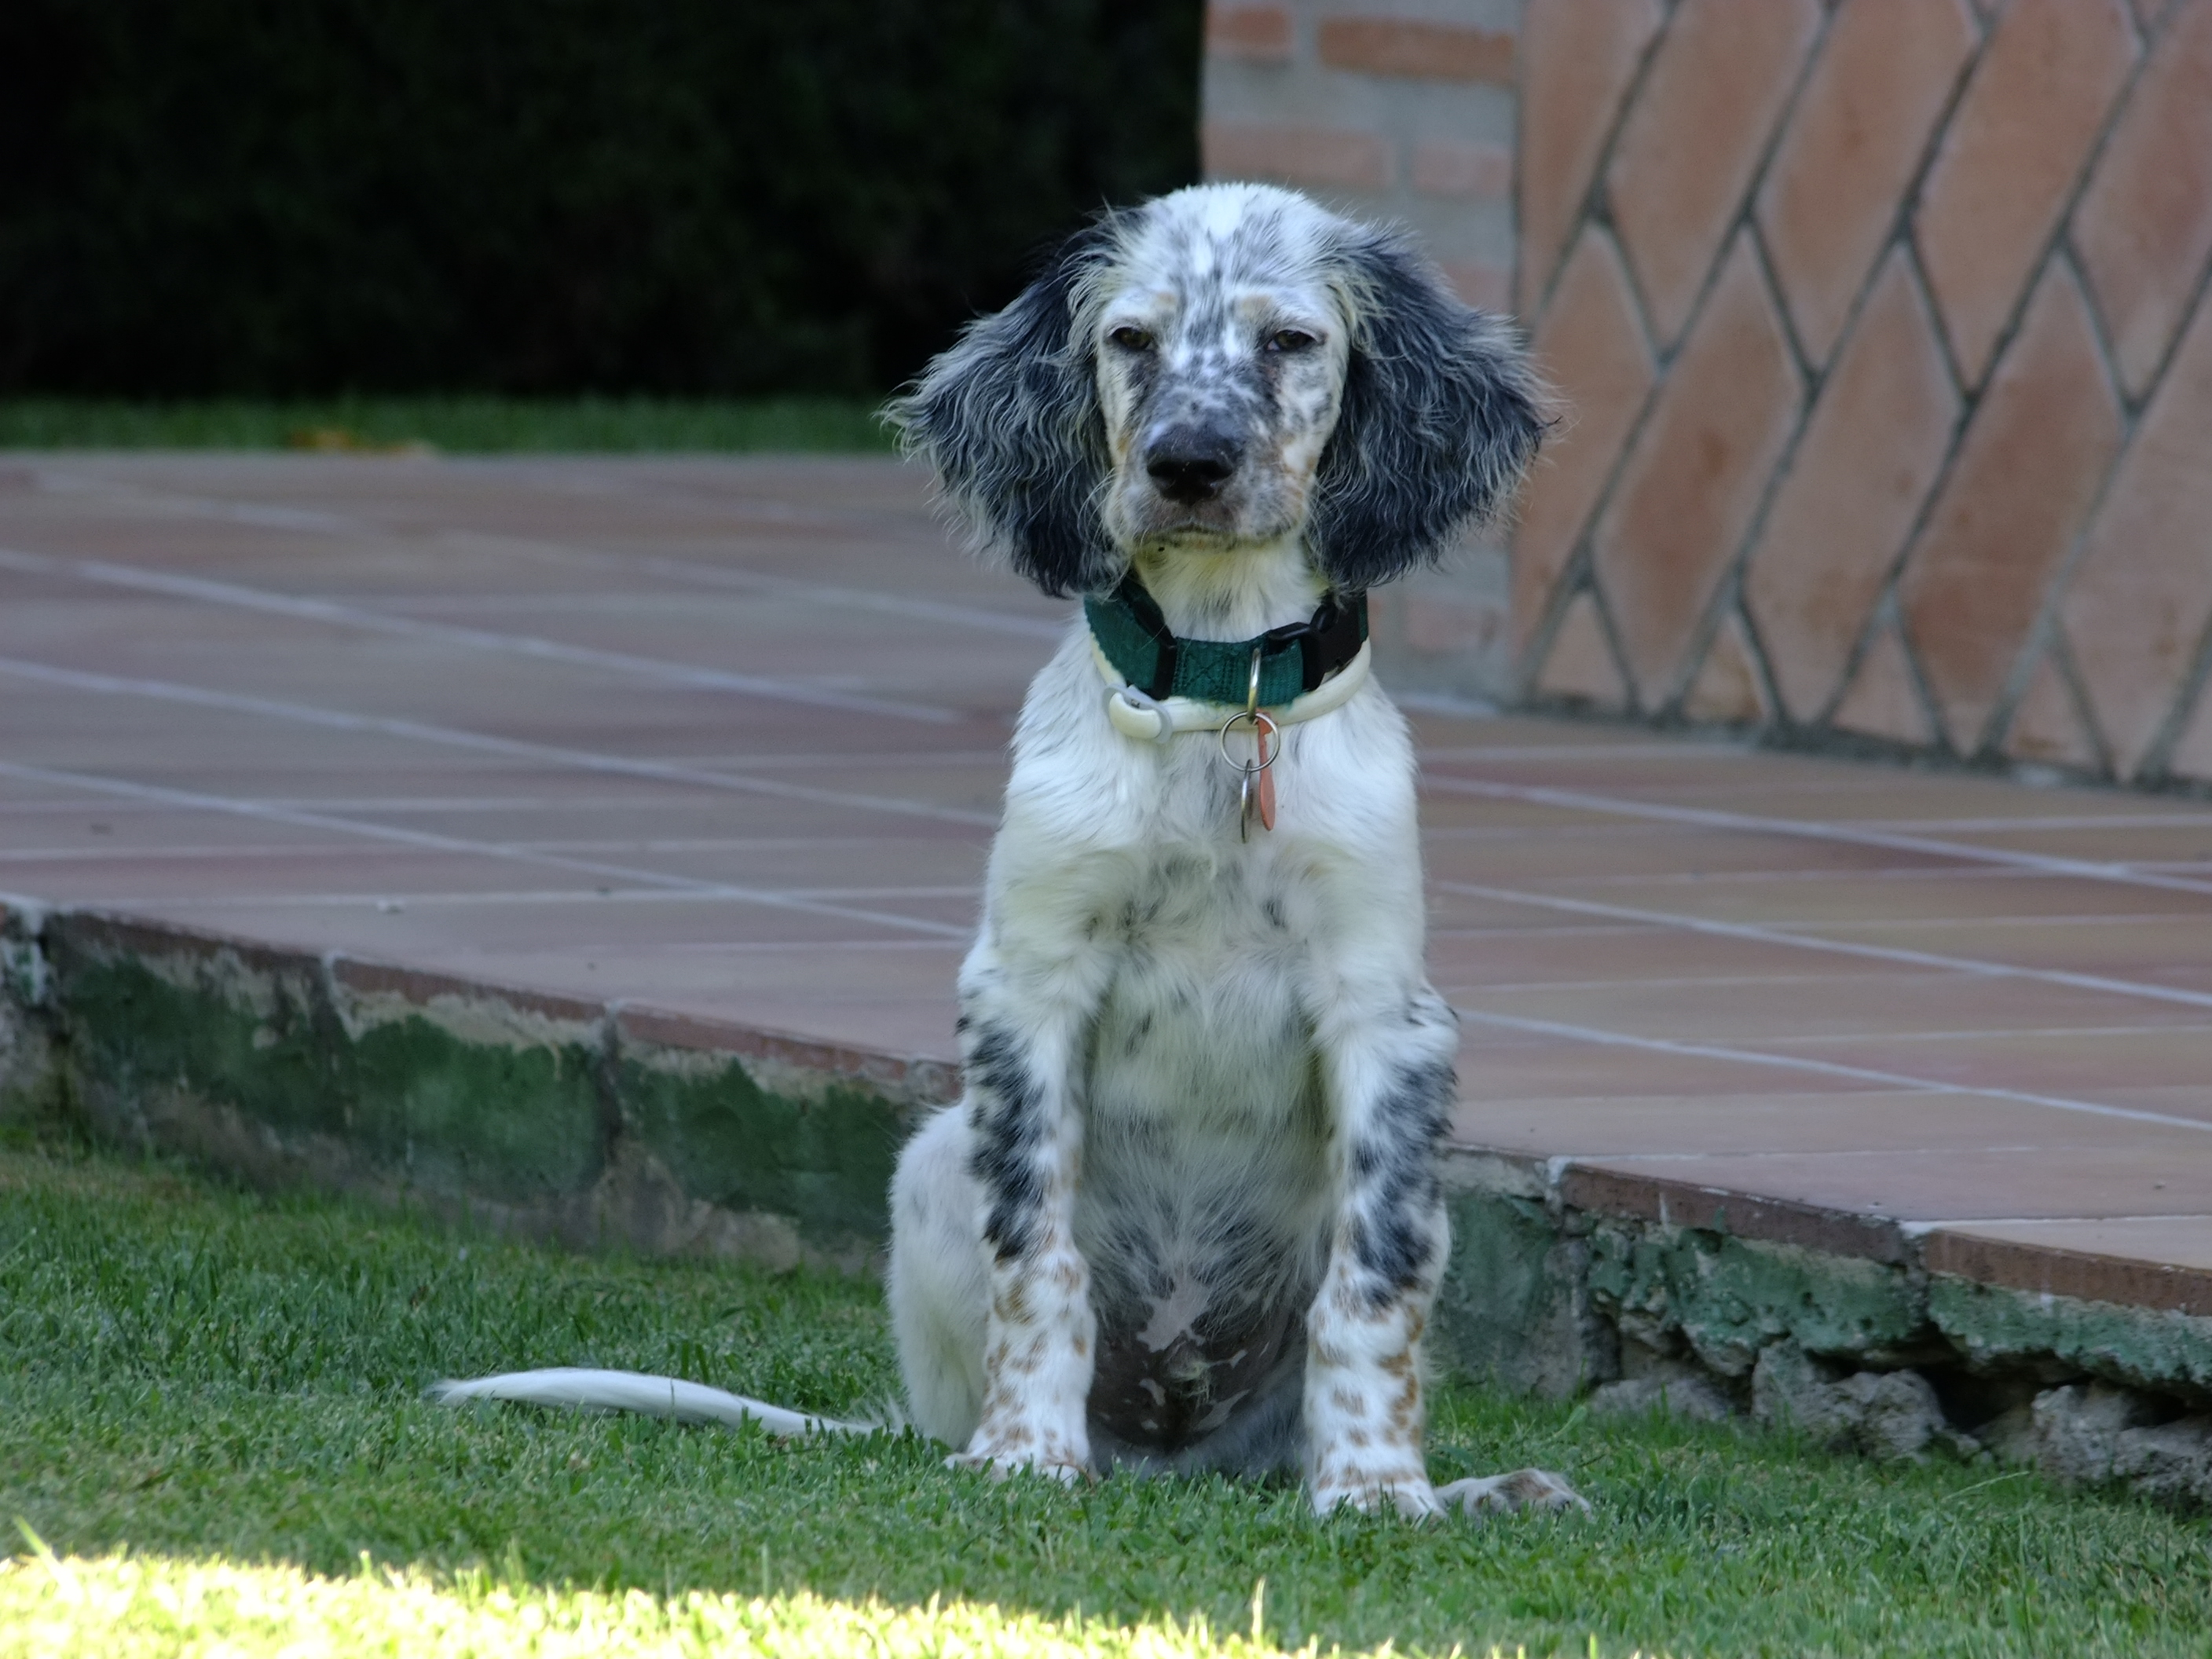 English Setter on the lawn wallpaper